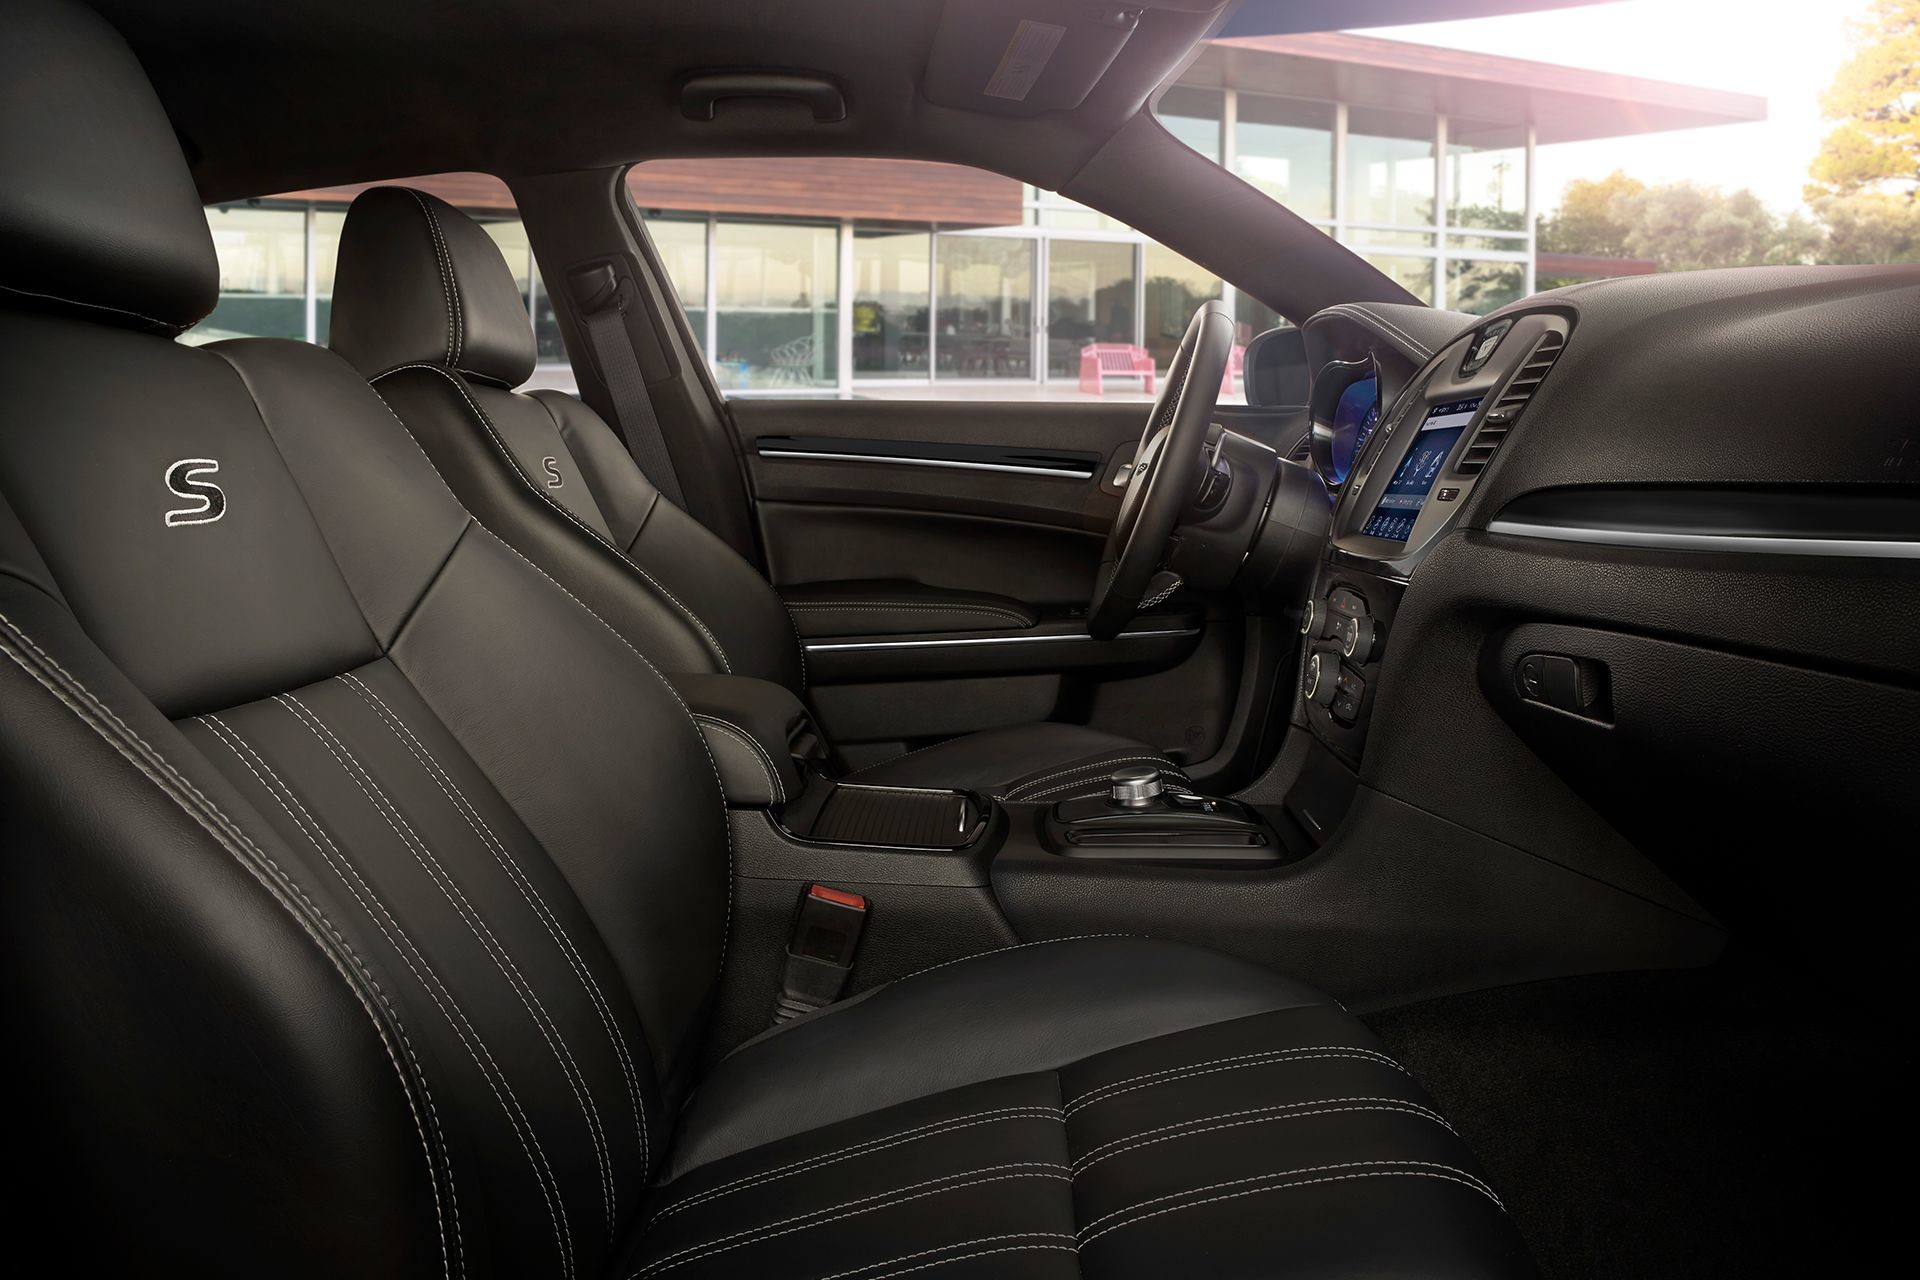 2019 Chrysler 300 with leather-faced performance seats